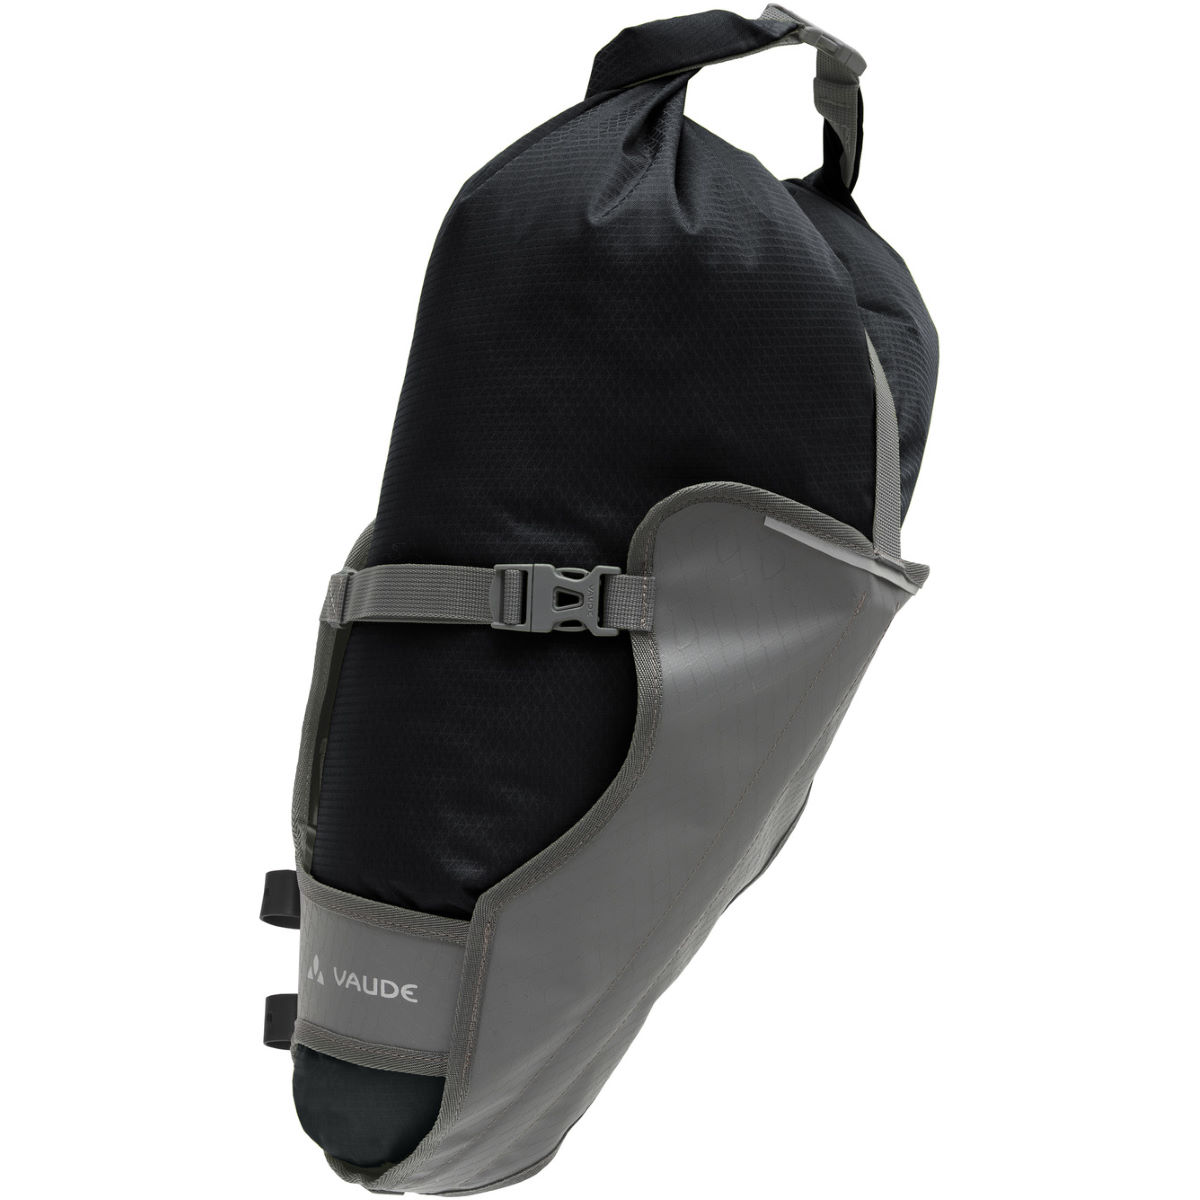 Vaude Trailsaddle Saddle Bag - Bolsas de sillín